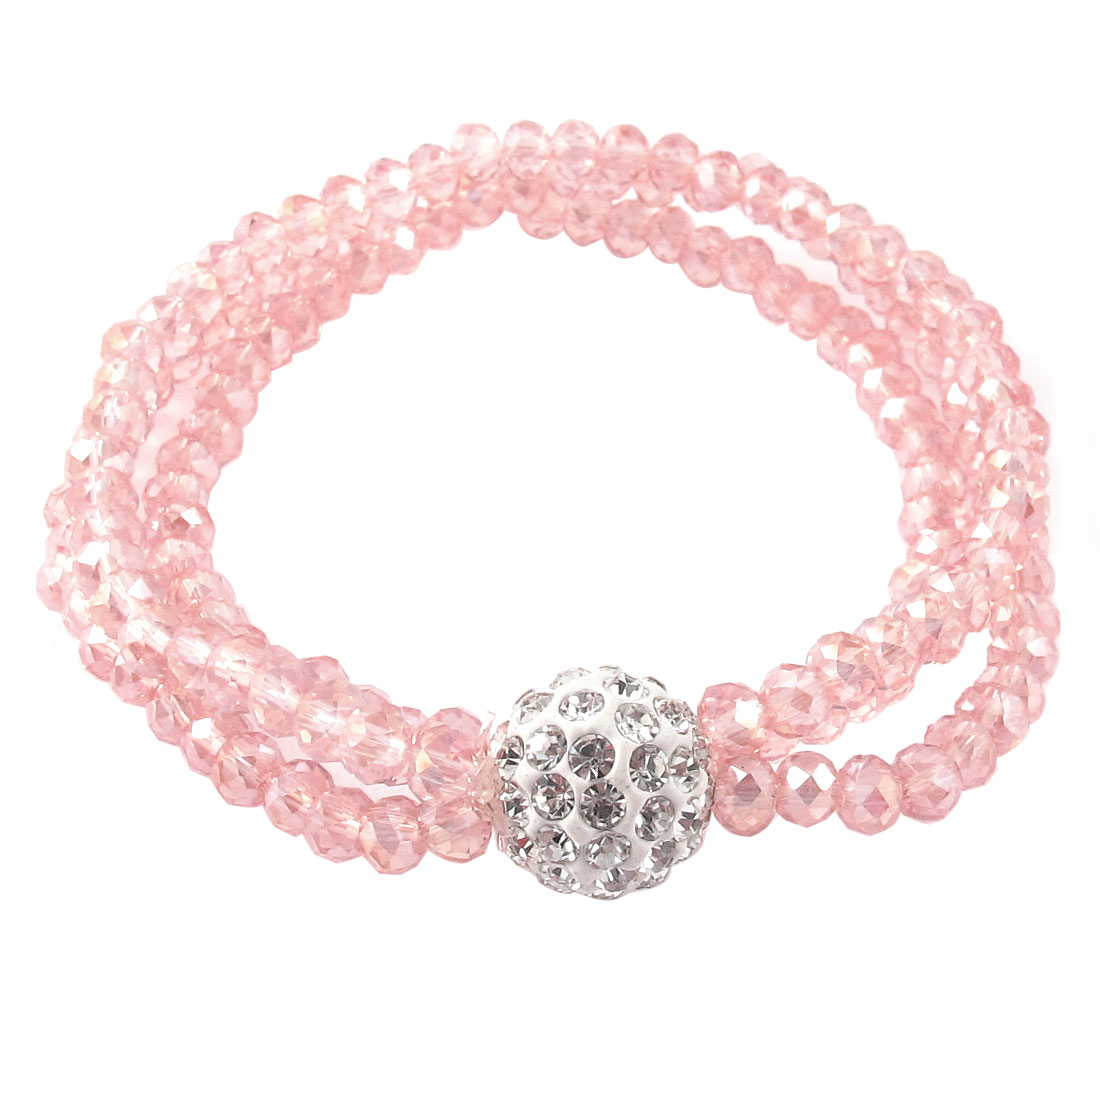 Faceted Bead Ornament 3 Layers Stretchy Wrist Bracelet Pink